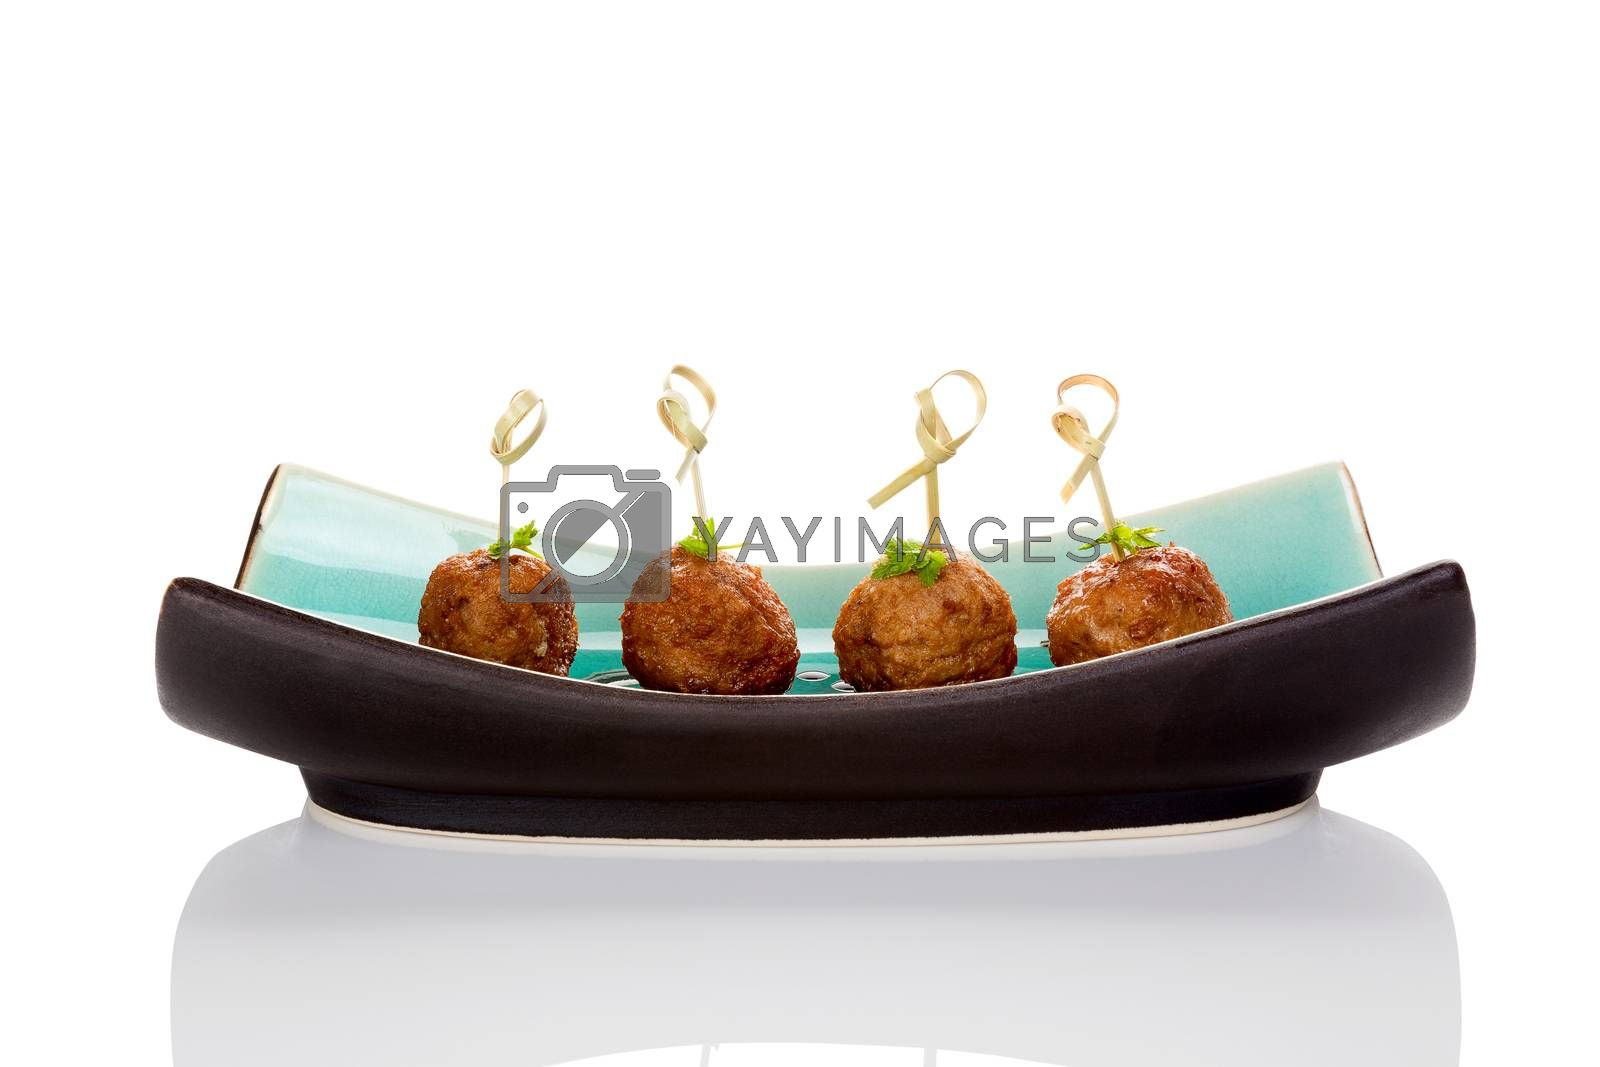 Meatballs canape on ceramic tray isolated on white background. Culinary bbq eating.